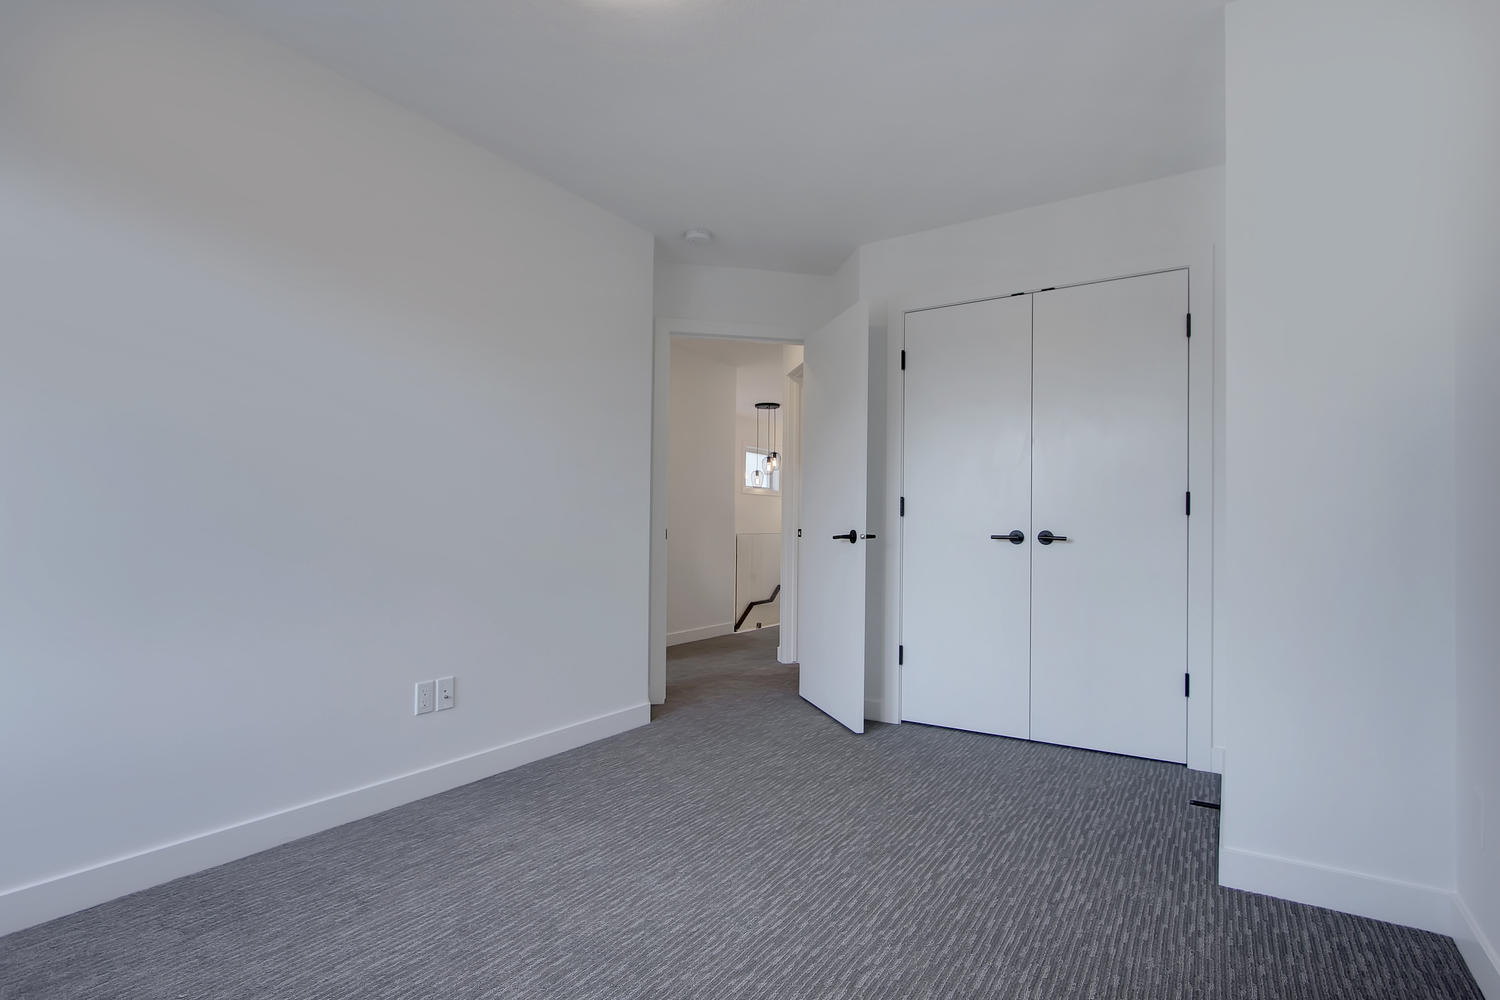 7632 92 Ave NW-large-056-141-Bedroom 2-1500x1000-72dpi.jpg